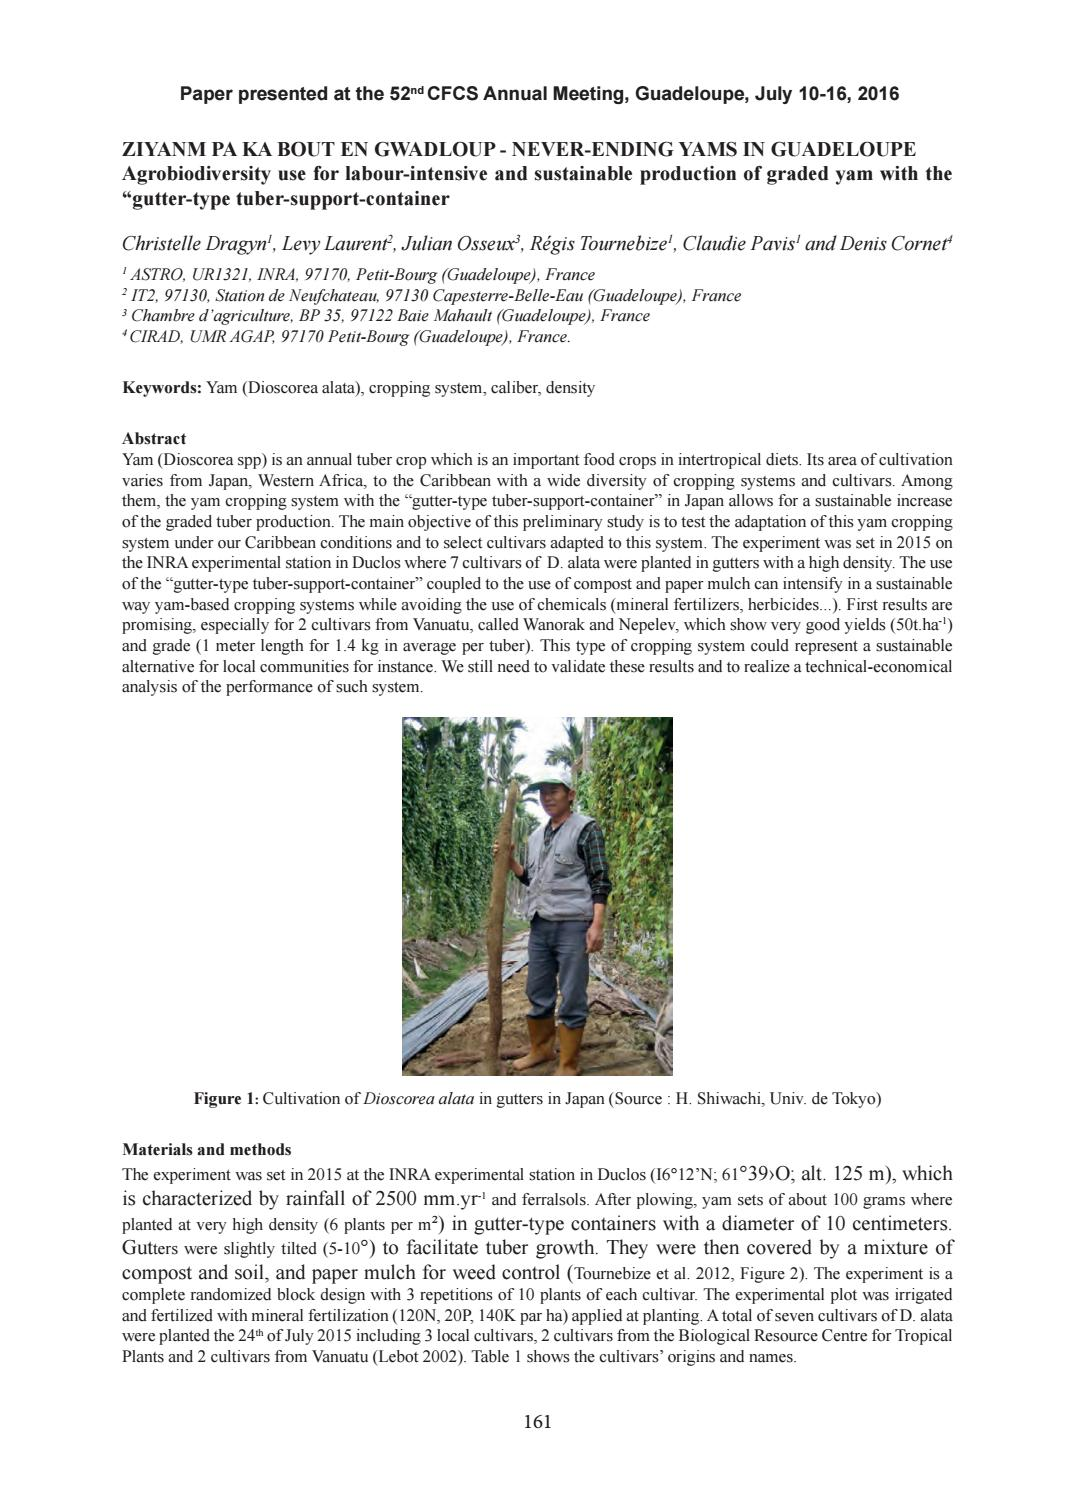 Proceedings of the 52nd annual meeting of the Caribbean Food Crops Society,  july 10 - july 16, 2016